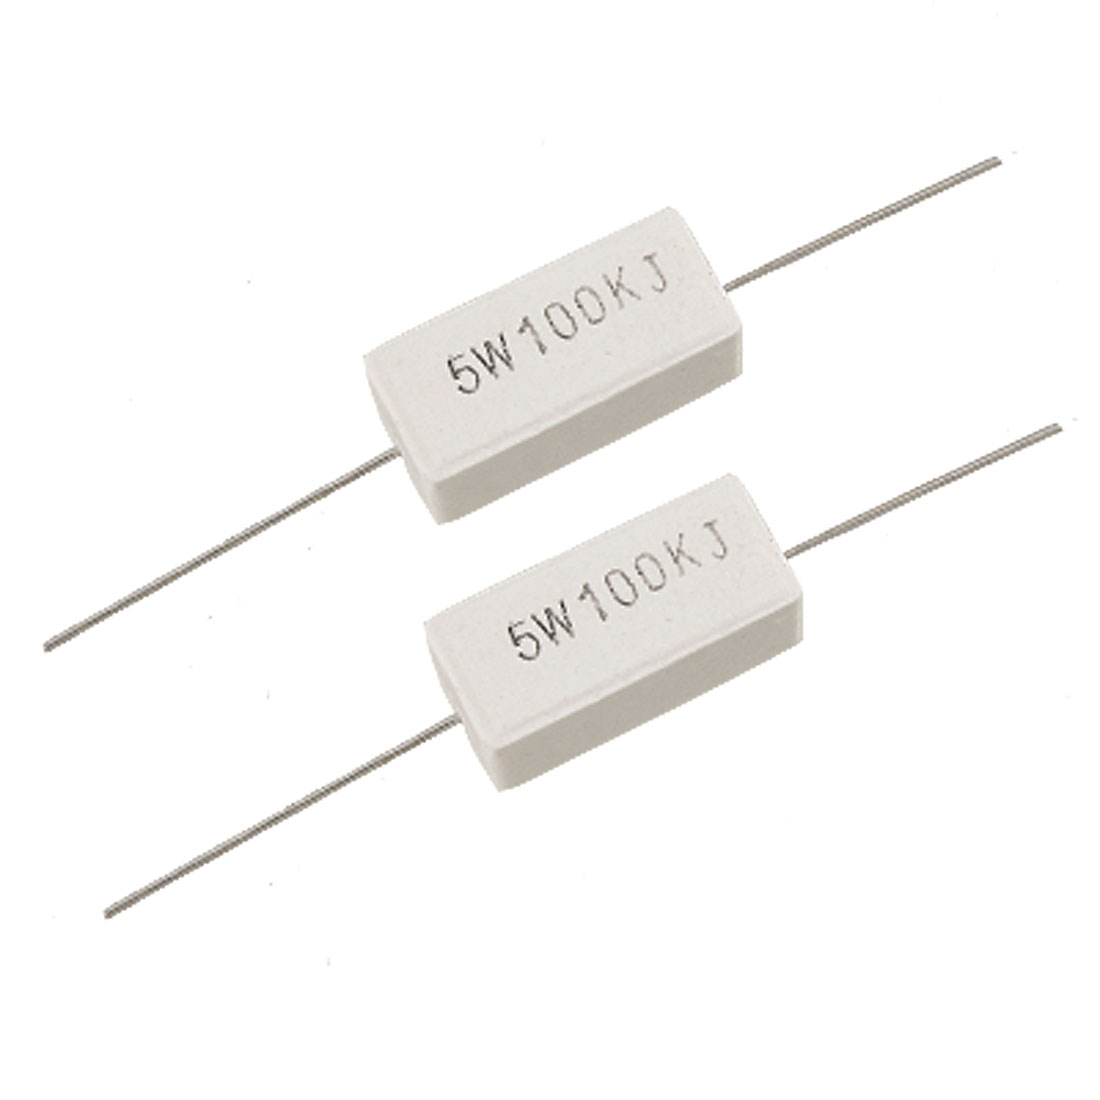 10 Pcs 5W Watt 100K Ohm Wire Wound Cement Power Resistors